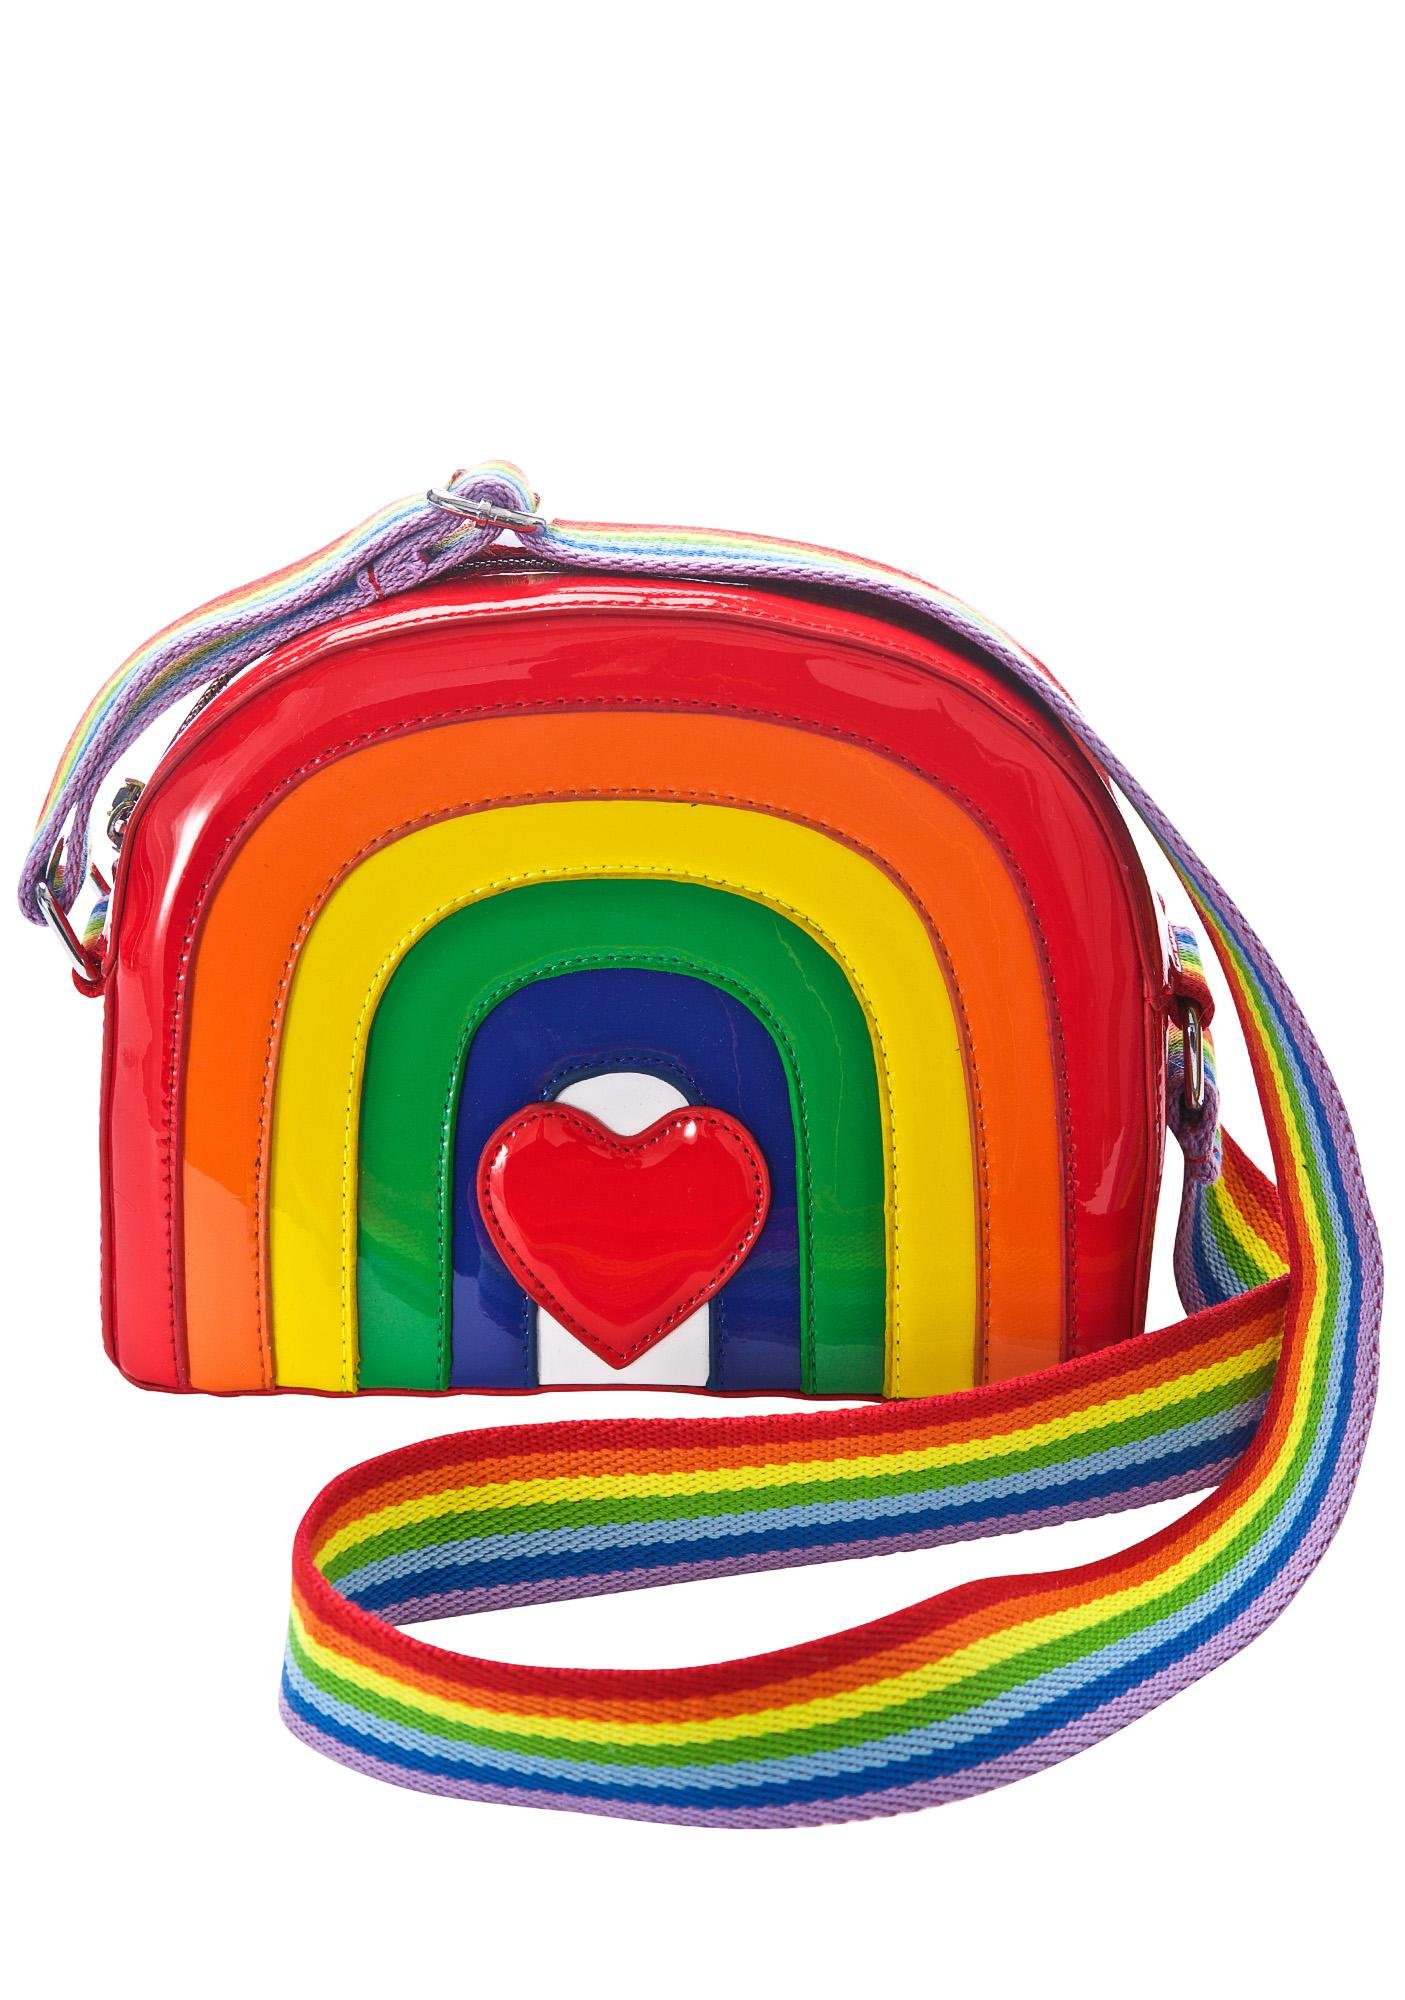 Cur Mood Over The Rainbow Bag